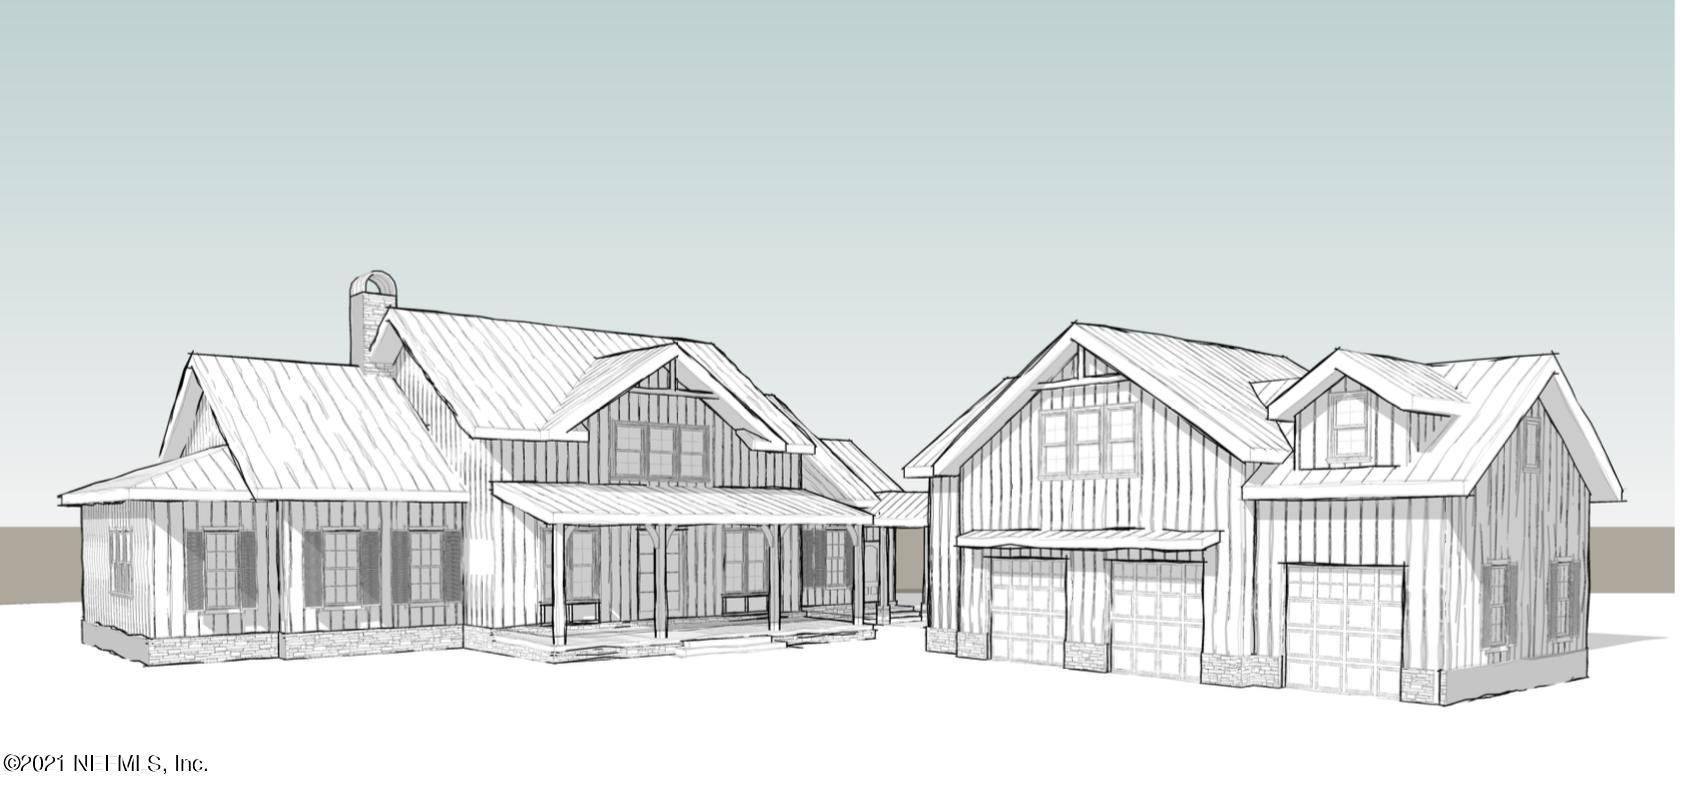 To be constructed by local custom contractor Barnett Custom Homes. This 4 bedroom 3.5 bath home will be built on a 1.03 acre marsh front lot. The beautifully designed home will feature 3540 square feet with an additional 800 square feet option above the 3 car garage. The open floorpan, French doors and large framed windows will maximize the wooded marsh views along the back of the home. A large back porch with outdoor kitchen and dining is perfect for entertaining. The exterior features standing seam metal roof, hardiboard and brick, pavered driveway and covered breezeway. interior finished include 8 foot doors, custom cabinetry, professional series appliances  and more. Call today to start the process of making this house your home.